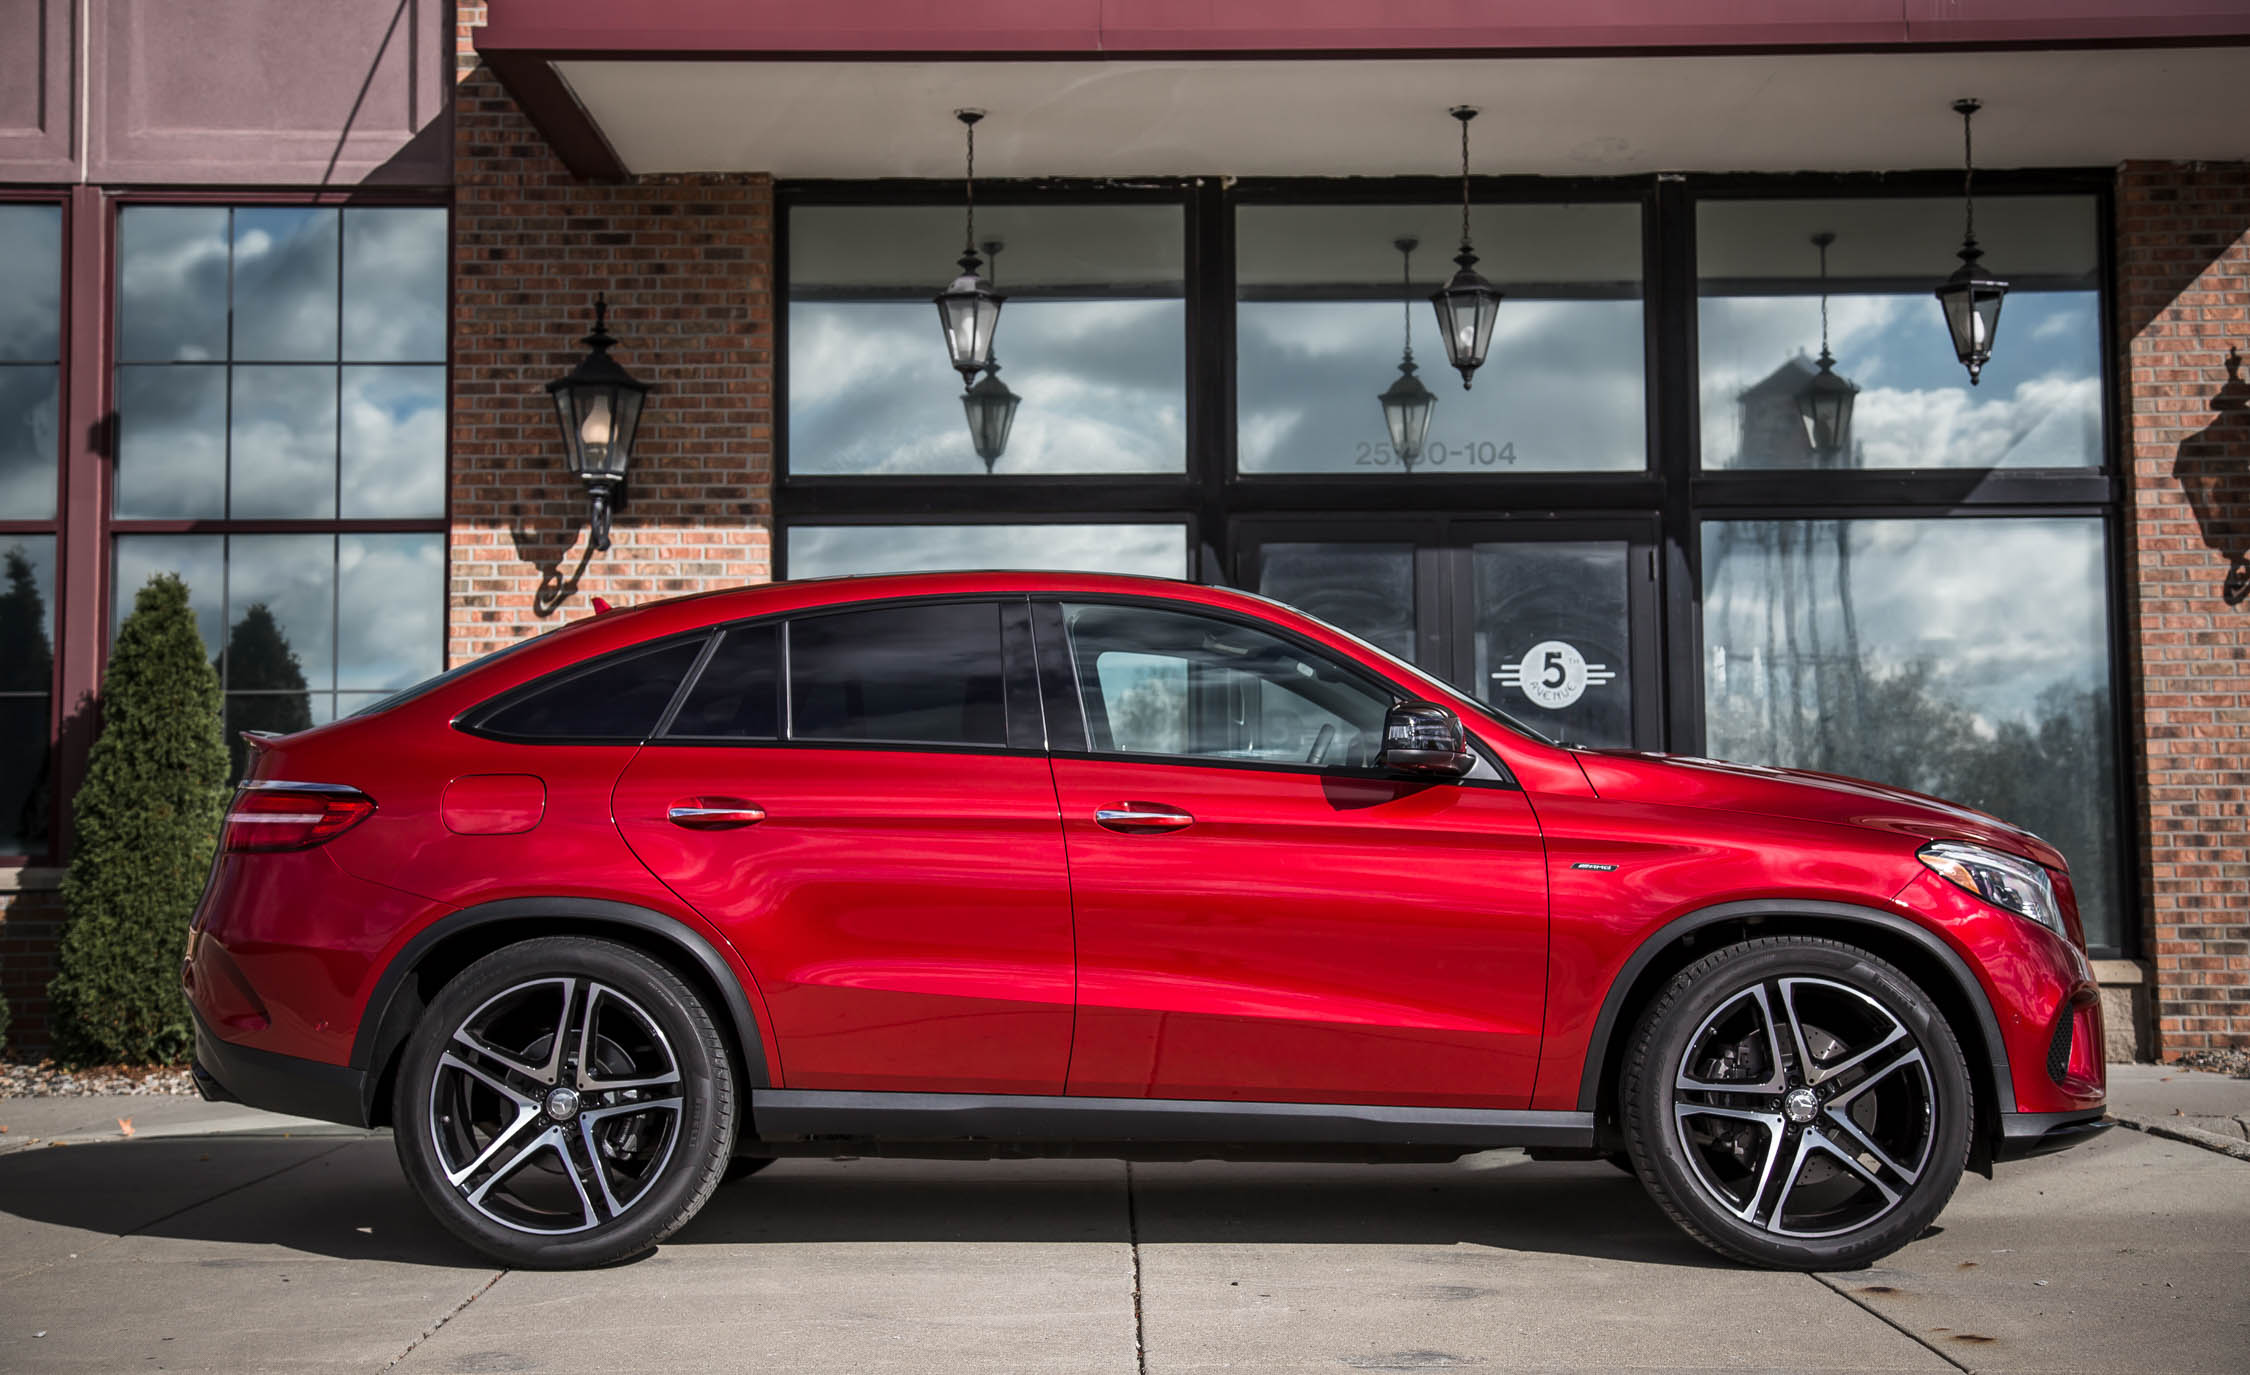 2016 Mercedes-Benz GLE450 AMG Coupe Exterior Side